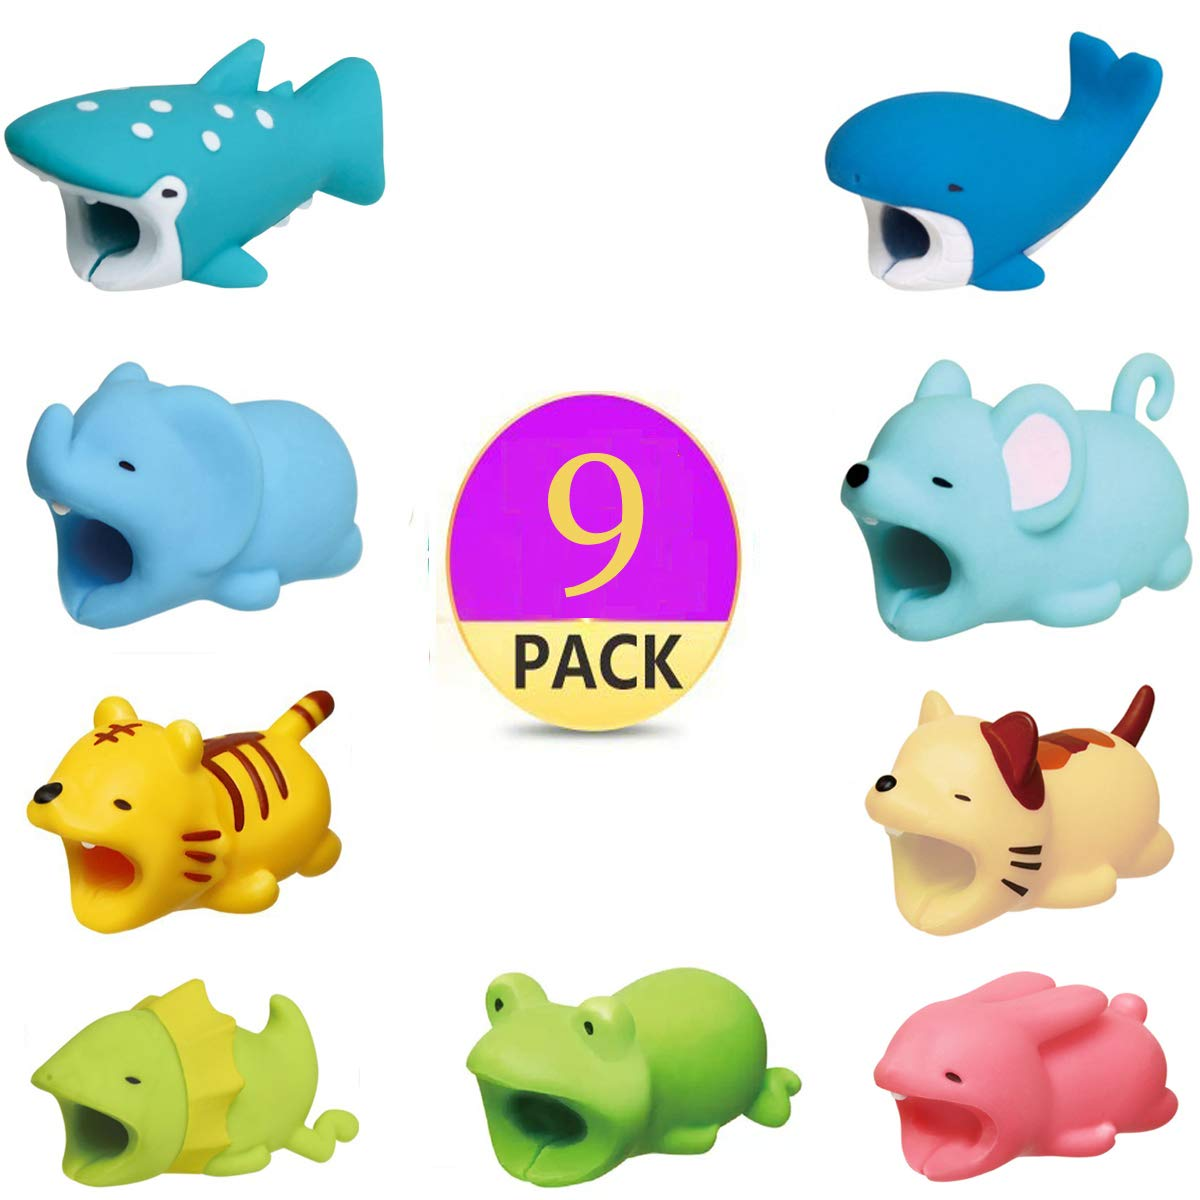 Pack of 9